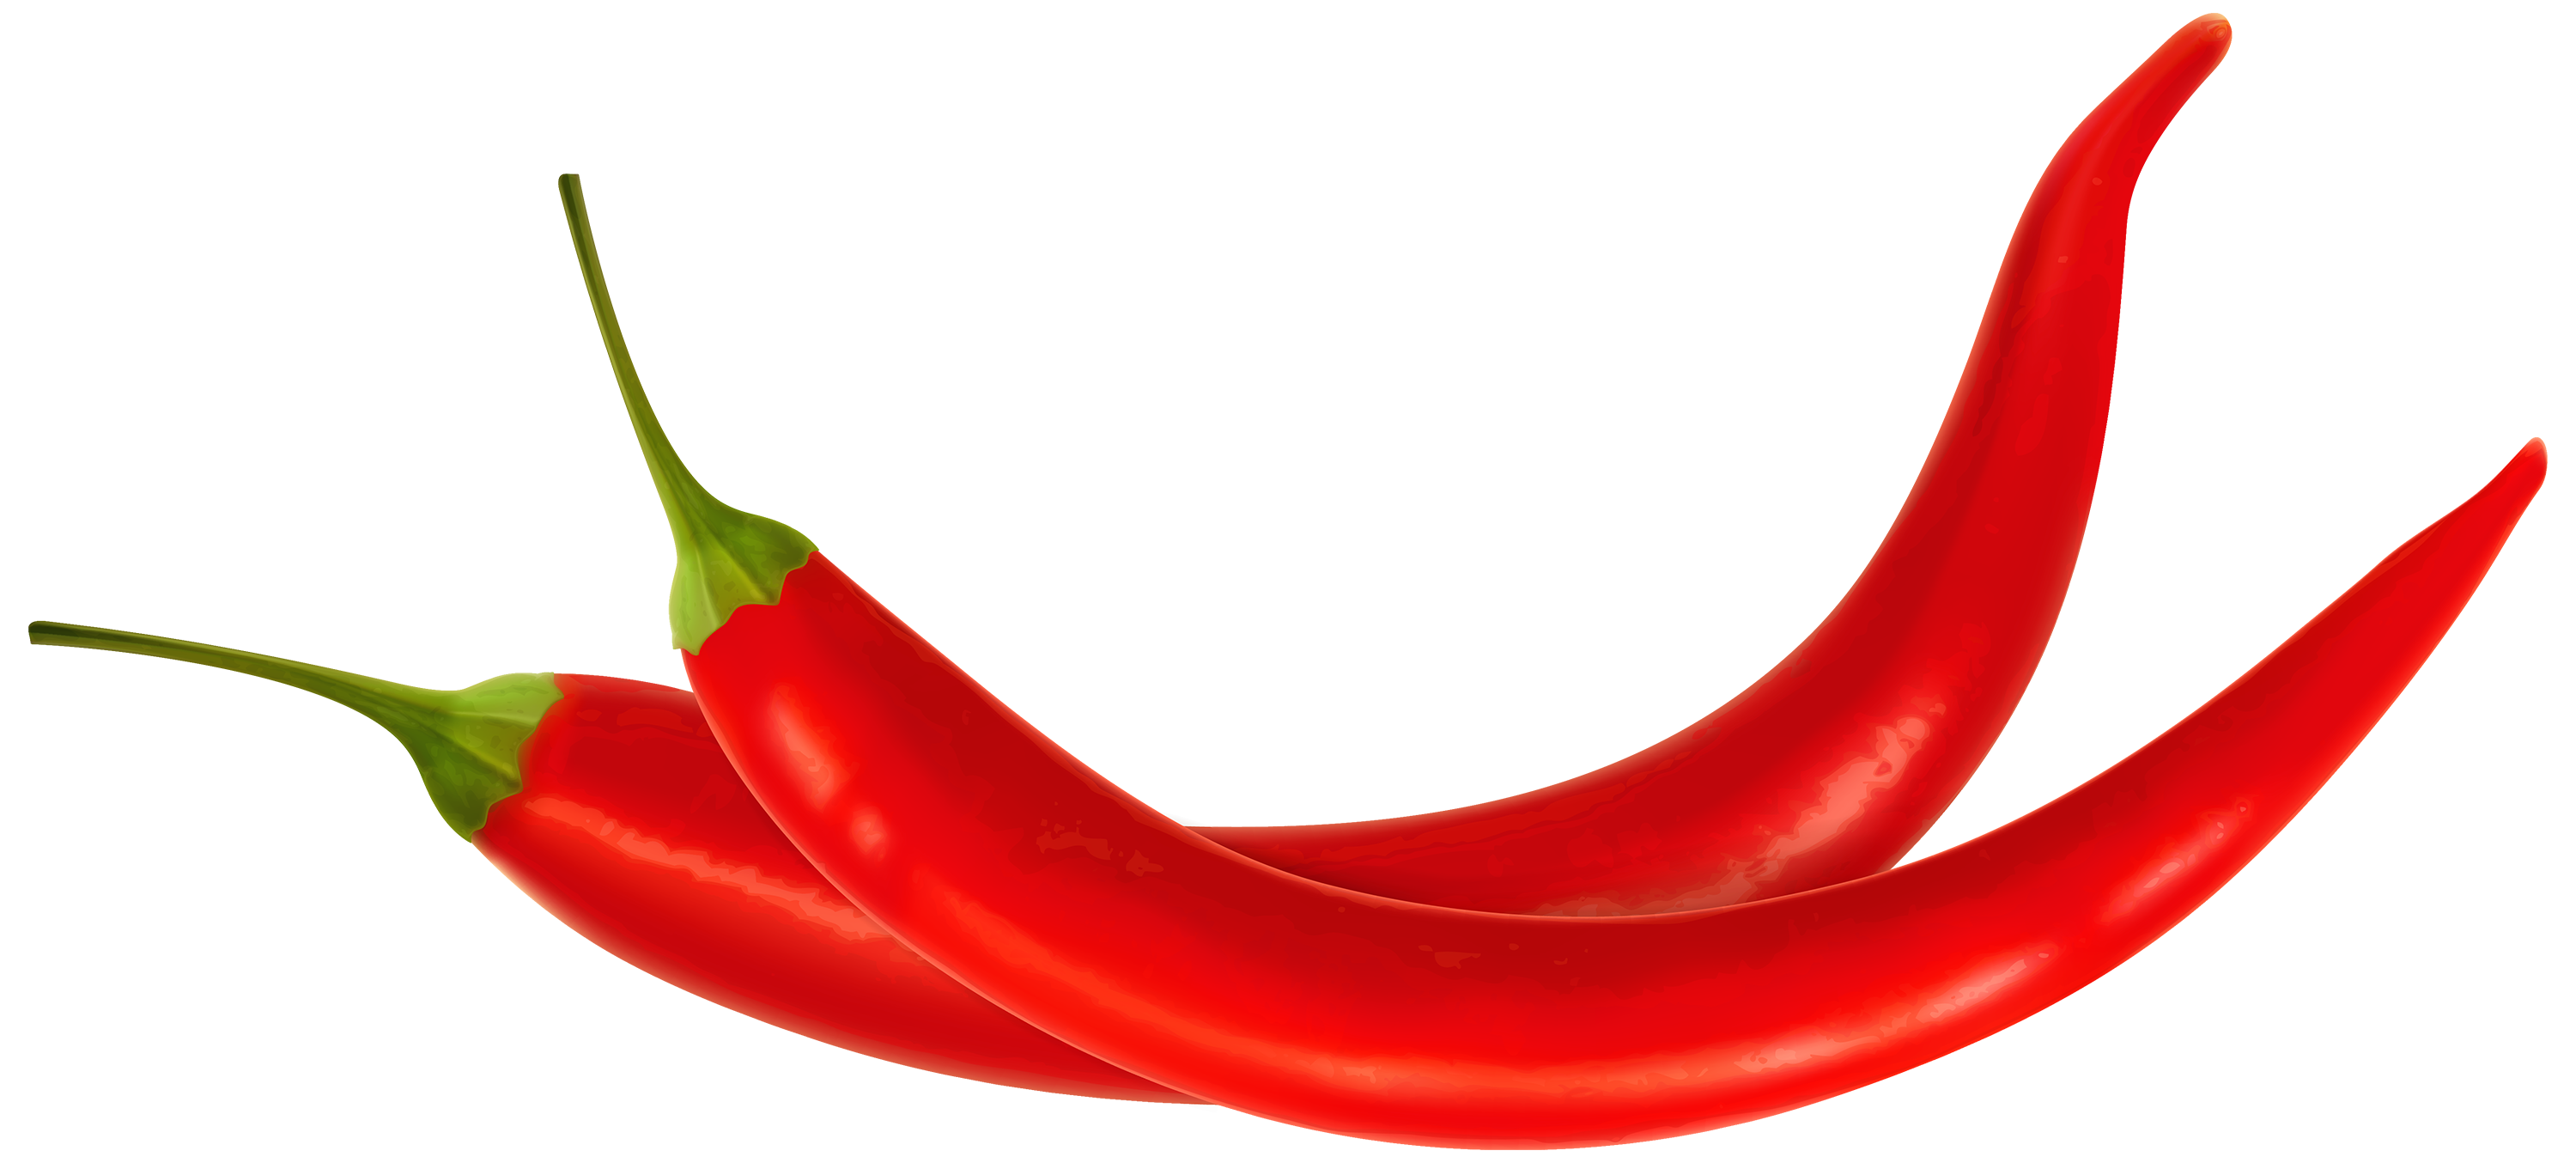 Peppers clipart habanero. Red chili web image